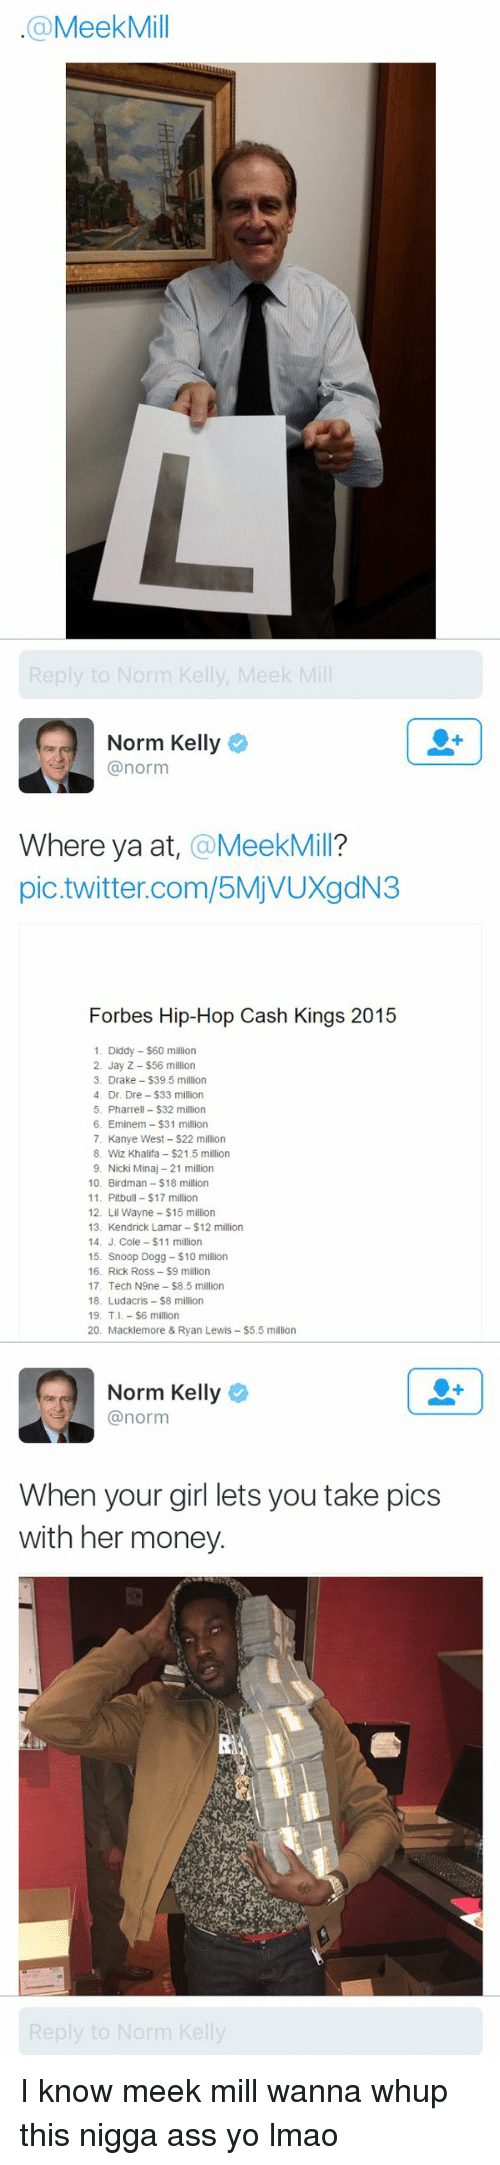 Pharrels: @Meek Mill  Reply to Norm Kelly, Meek Mill   Norm Kelly  (a norm  Where ya at  MeekMill  pictwitter.com/5MiVUXgdN3  Forbes Hip-Hop Cash Kings 2015  1. Diddy -$60 million  2. Jay Z-$56 million  3. Drake $39.5 million  4. Dr. Dre -$33 million  5. Pharrell -$32 million  6. Eminem $31 million  7. Kanye West $22 million  8. Wiz Khalifa -$21.5 million  9. Nicki Minaj 21 million  10. Birdman $18 million  11, Pitbull $17 million  12. Lil Wayne -$15 million  13. Kendrick Lamar -$12 million  14. J. Cole -$11 million  15. Snoop Dogg -$10 million  16. Rick Ross -$9 million  17. Tech N9ne $8.5 million  18. Ludacris -$8 million  19, T  l. $6 million  20. Macklemore & Ryan Lewis -$5.5 million   Norm Kelly  @norm  When your girl lets you take pics  with her money.  Reply to Norm Kelly I know meek mill wanna whup this nigga ass yo lmao